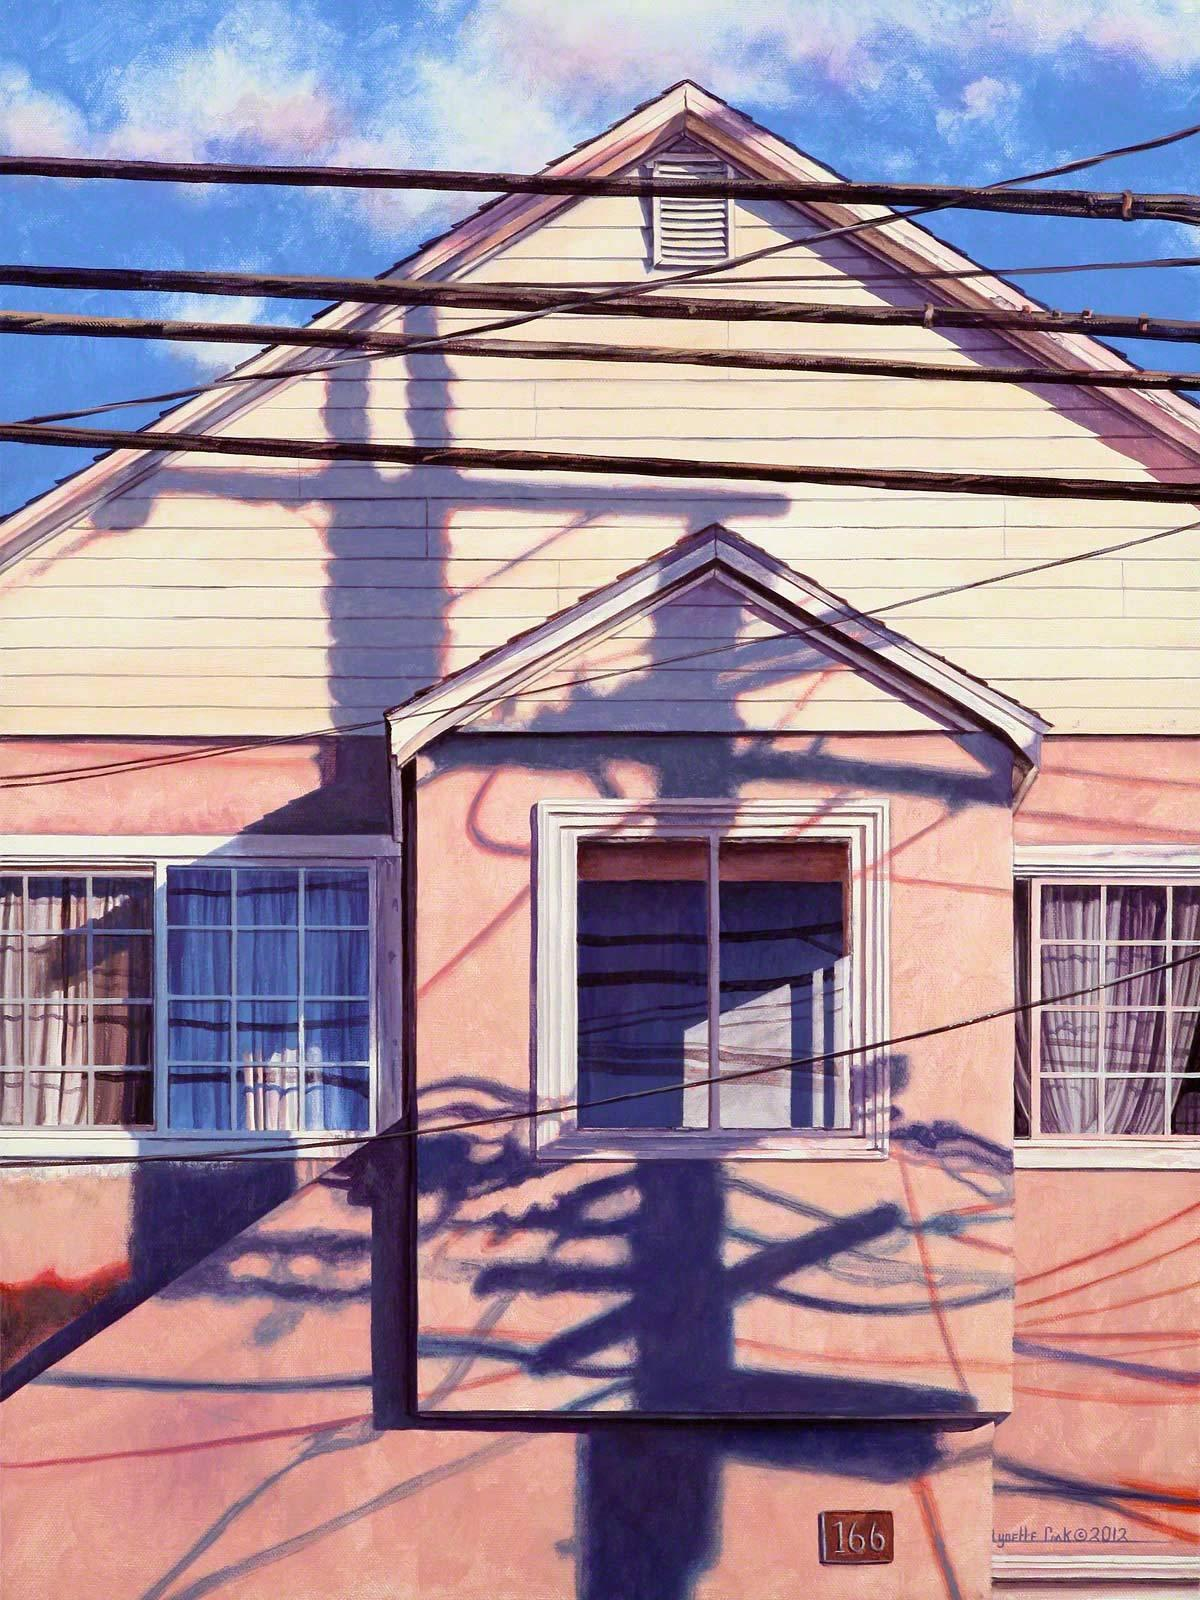 NEXUS / realism hyperreal acrylic painting - home, pink house